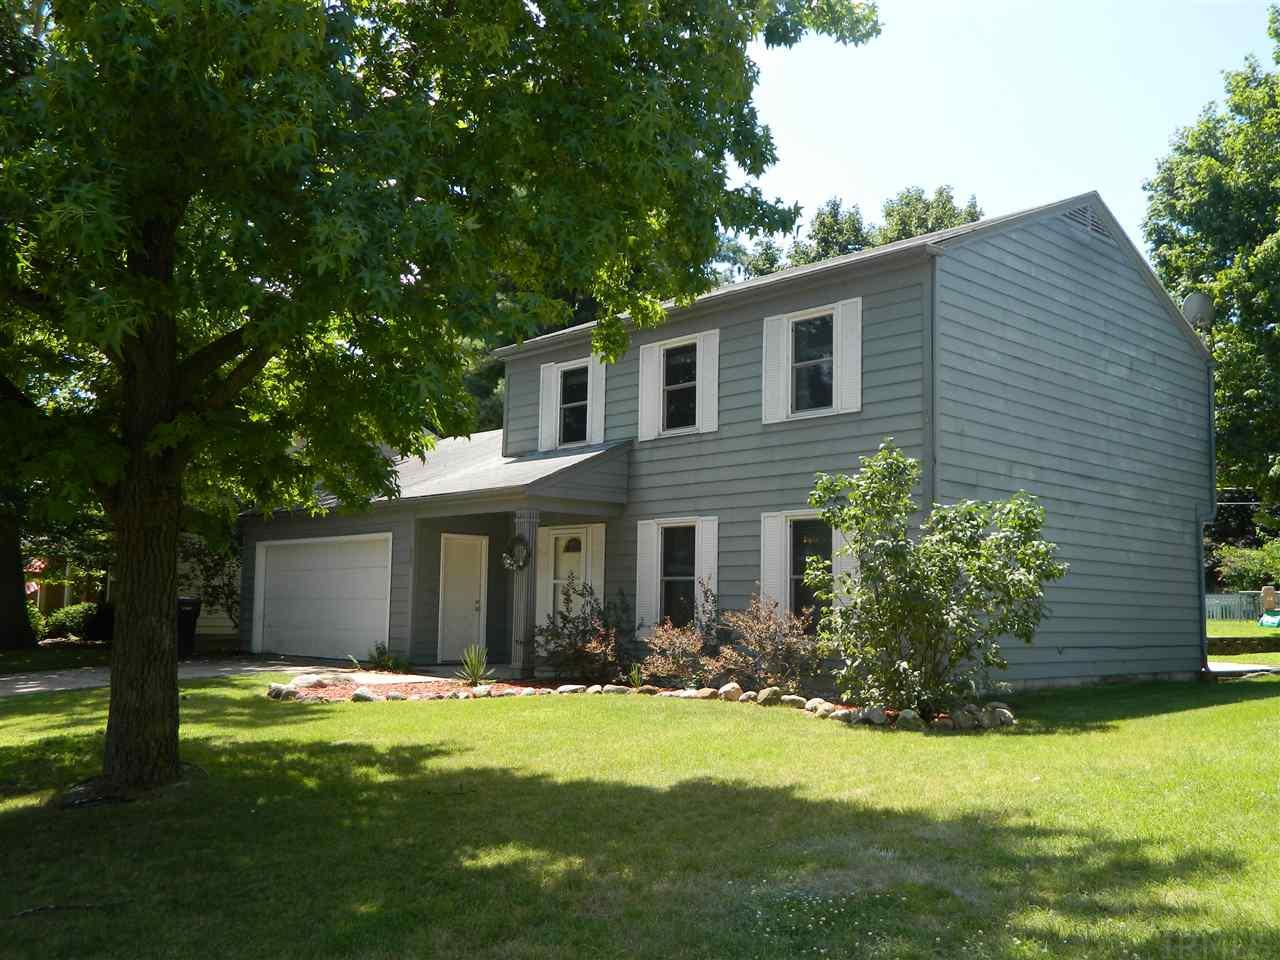 605 N Lincoln, Warsaw, IN 46580